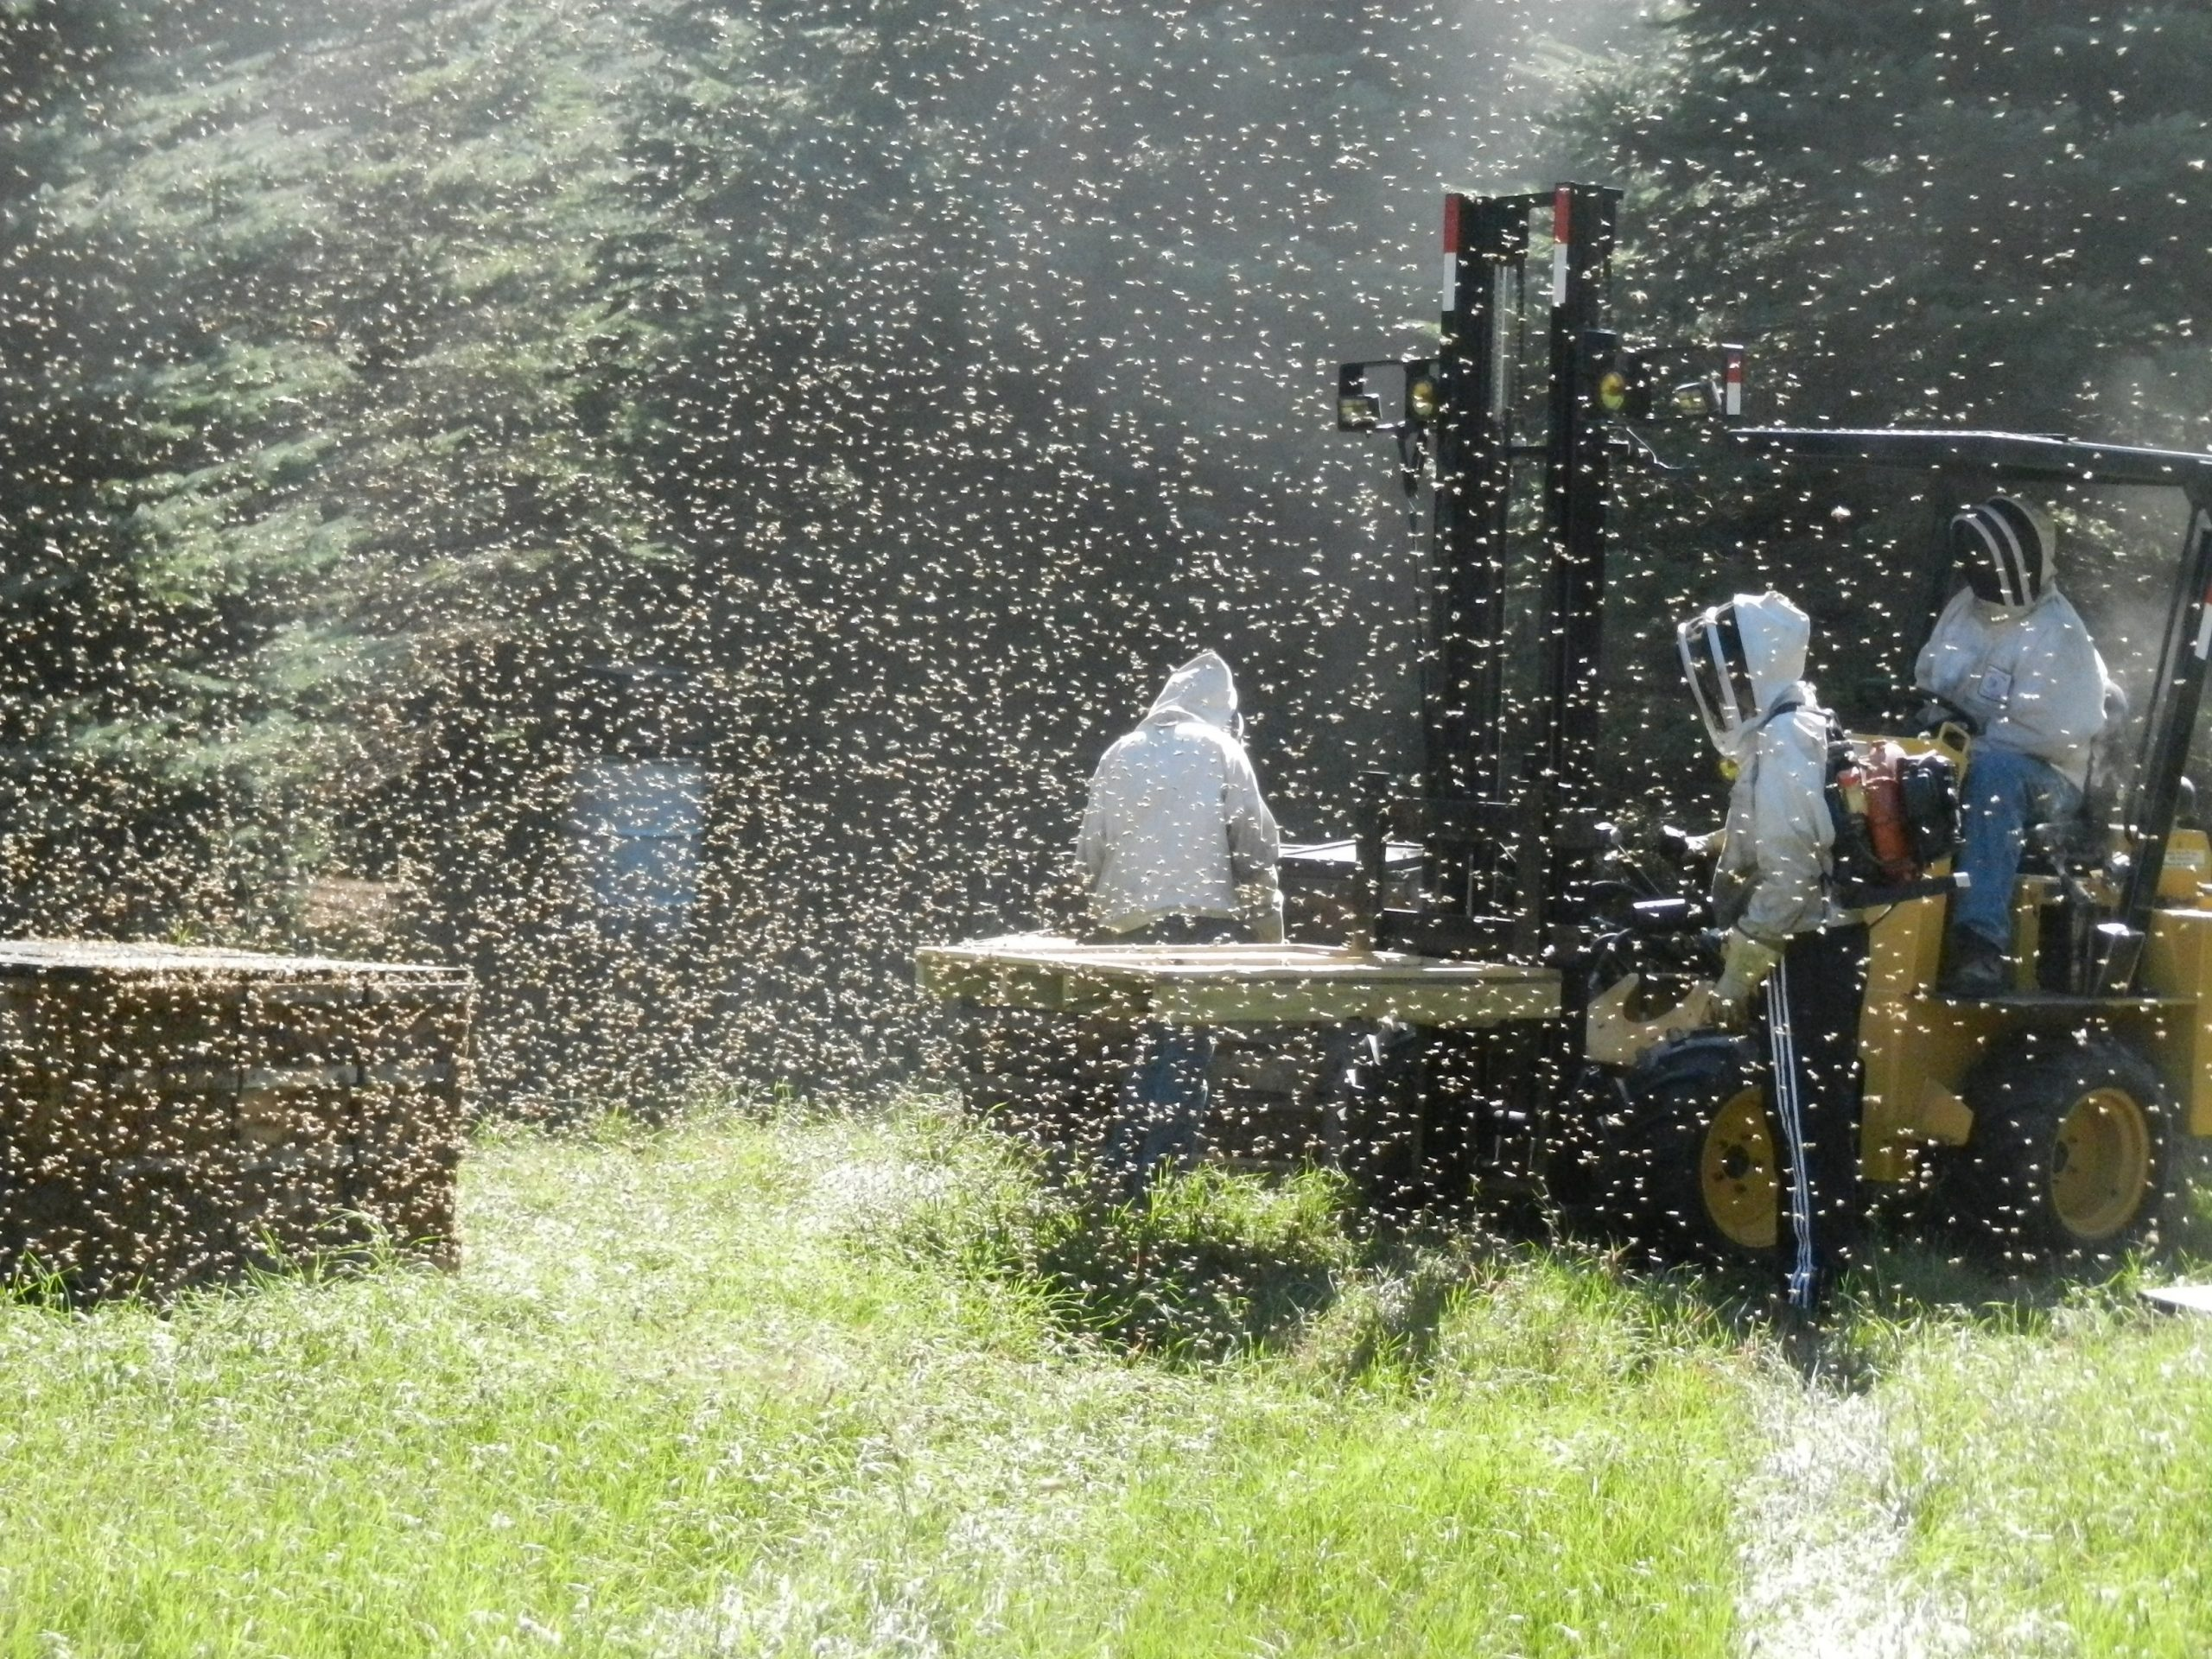 A. H. Apiaries - Beekeepers moving the hives at Michigan Honey Farm